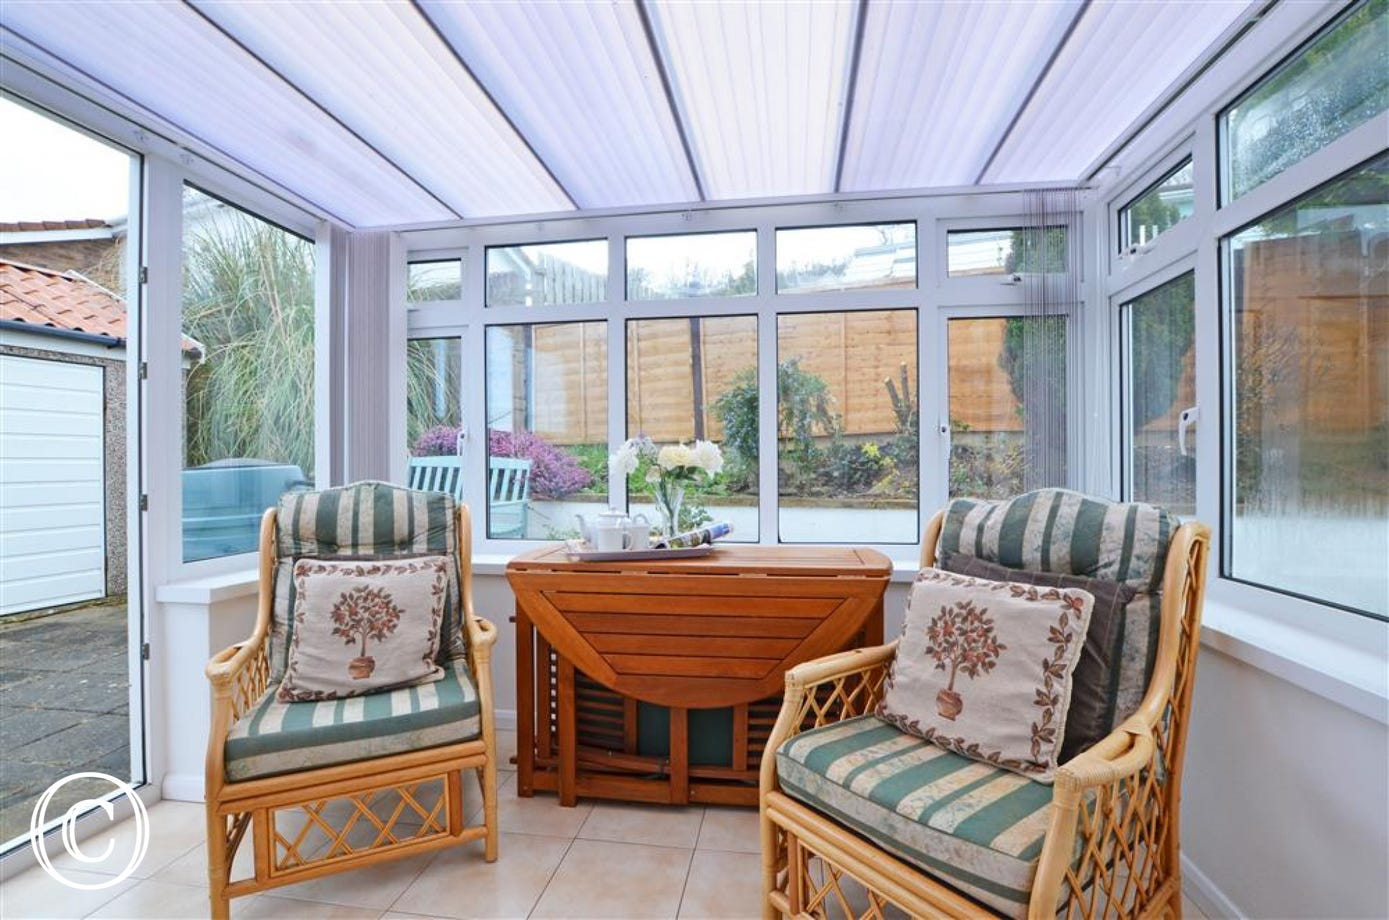 The conservatory adds extra space to relax and has access to the patio and garden